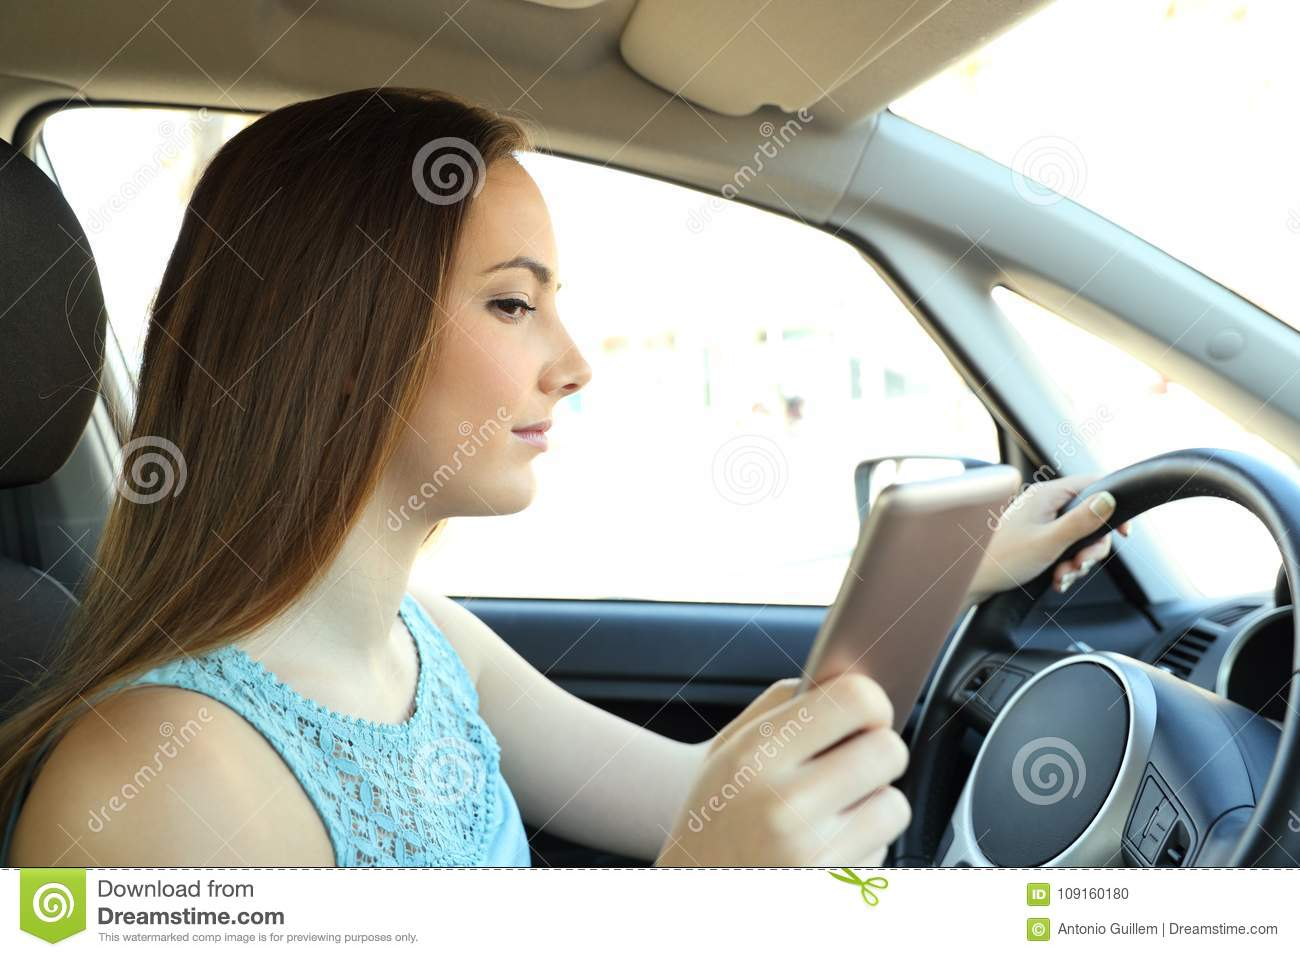 Distracted driver reading phone message driving a car